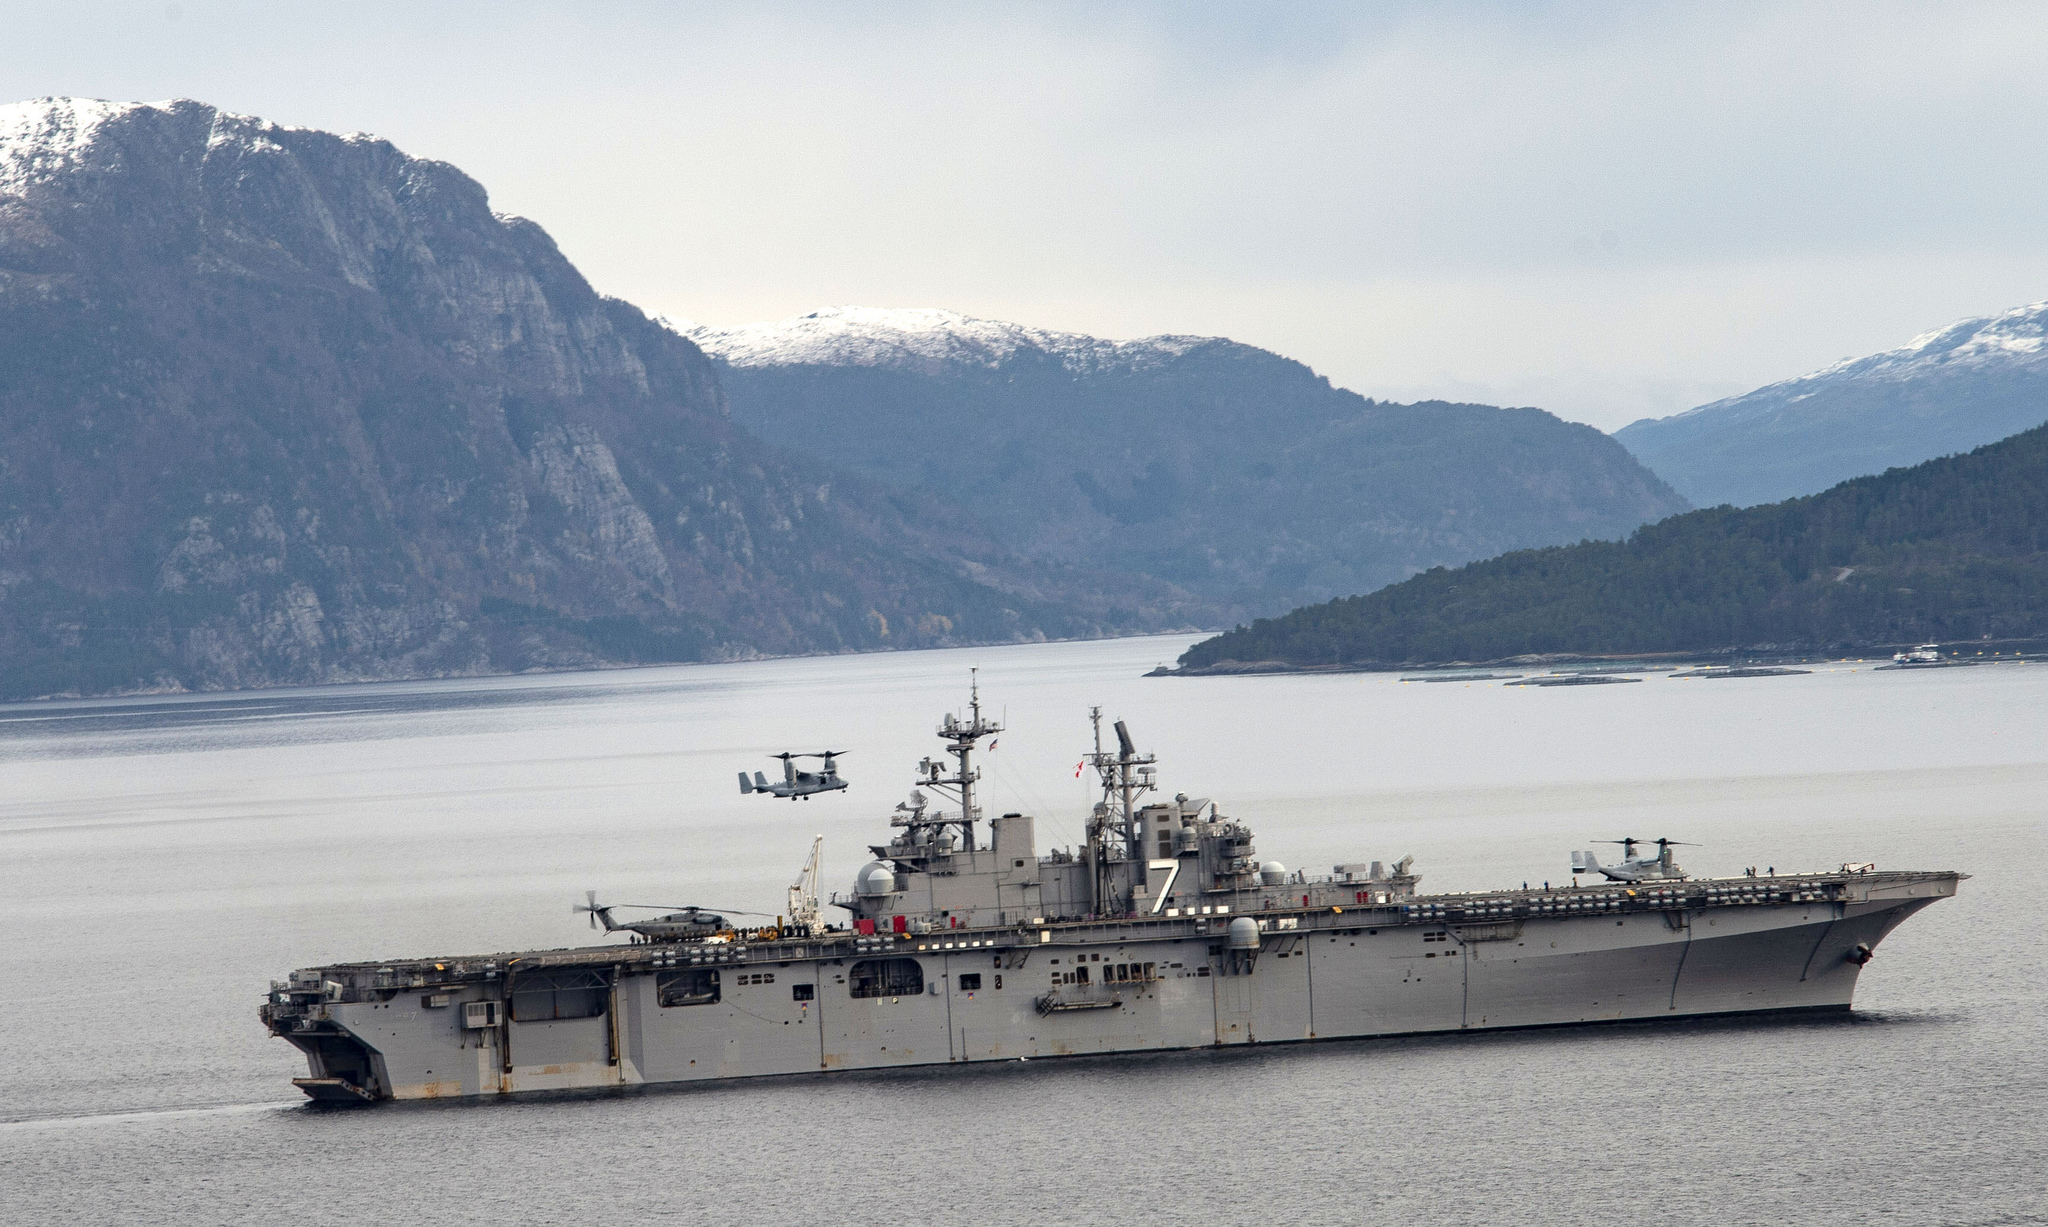 The Wasp-class amphibious assault ship USS Iwo Jima (LHD 7) transits the Alvund Fjord, Oct. 31, 2018, while participating in Trident Juncture 2018, a NATO-led exercise designed to certify NATO response forces and develop interoperability among participating NATO-allied and partner nations. (MC3 Joe J. Cardona Gonzalez/Navy)